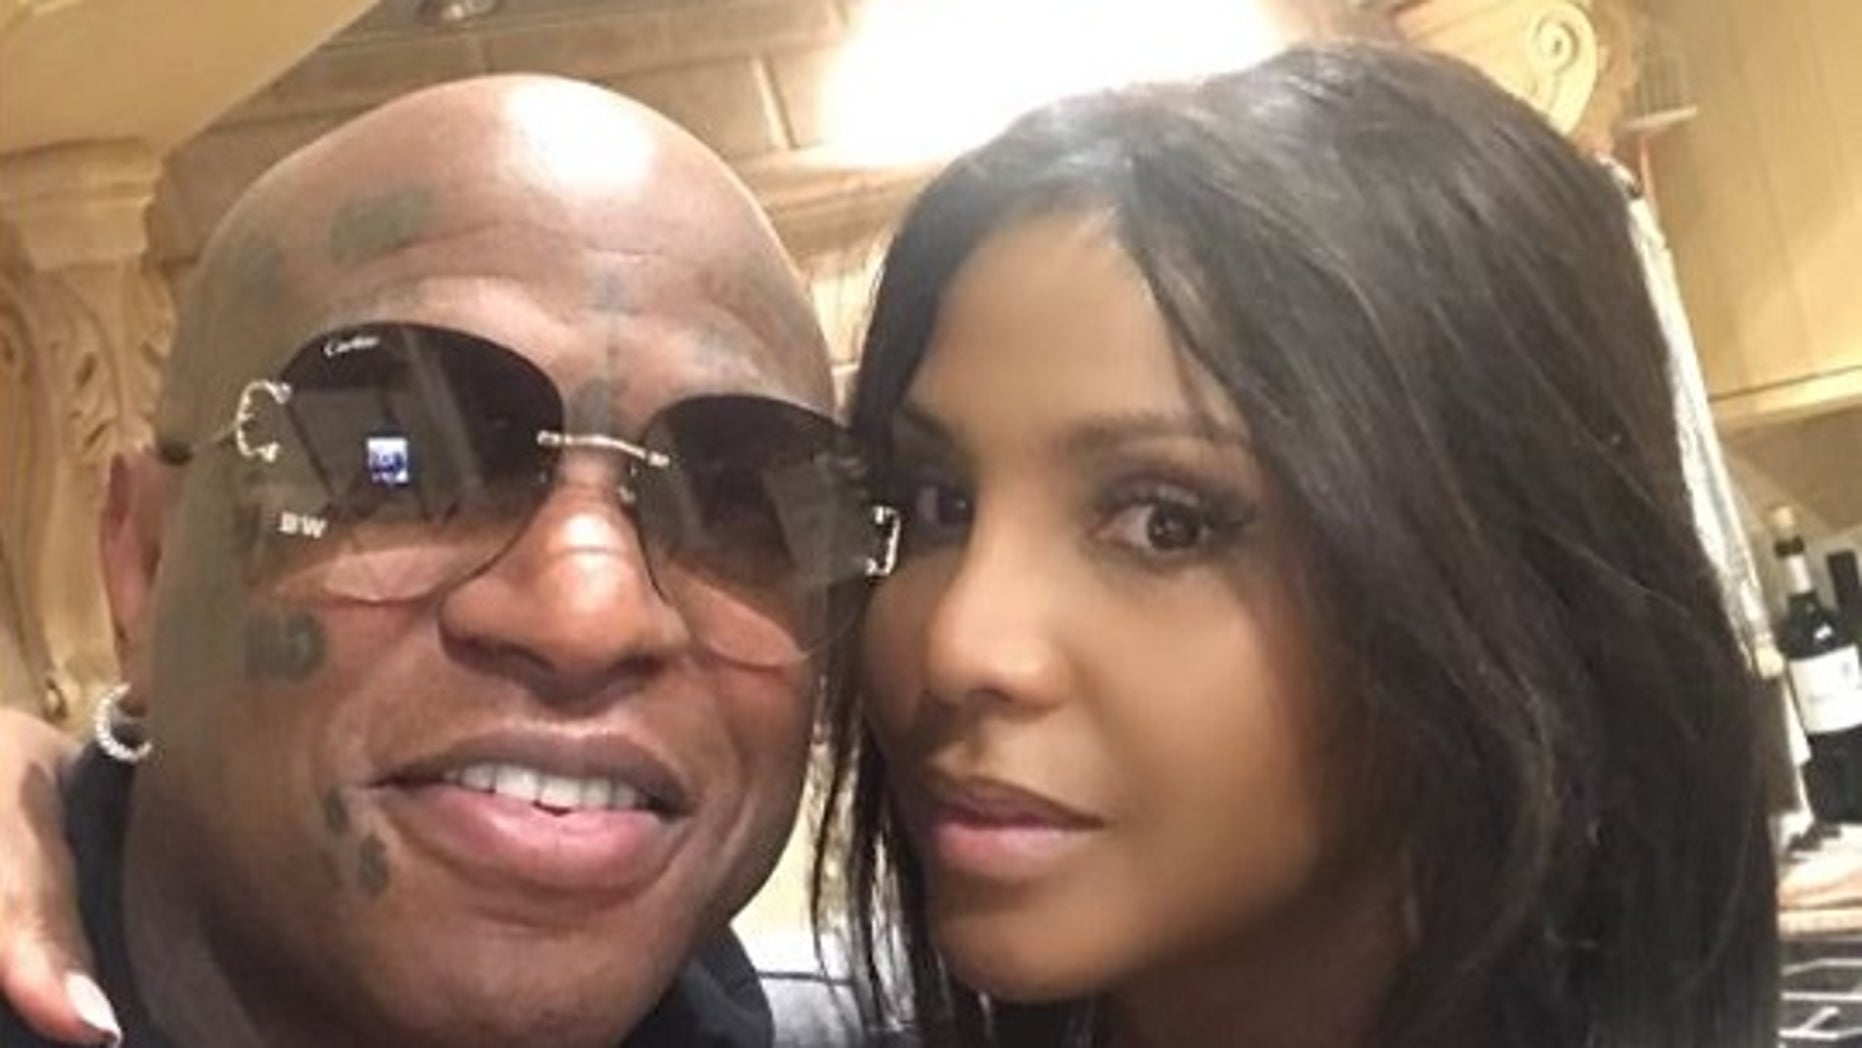 Toni Braxton lost her engagement ring after a recent Delta flight. The singer and Birdman confirmed their engagement earlier this year.